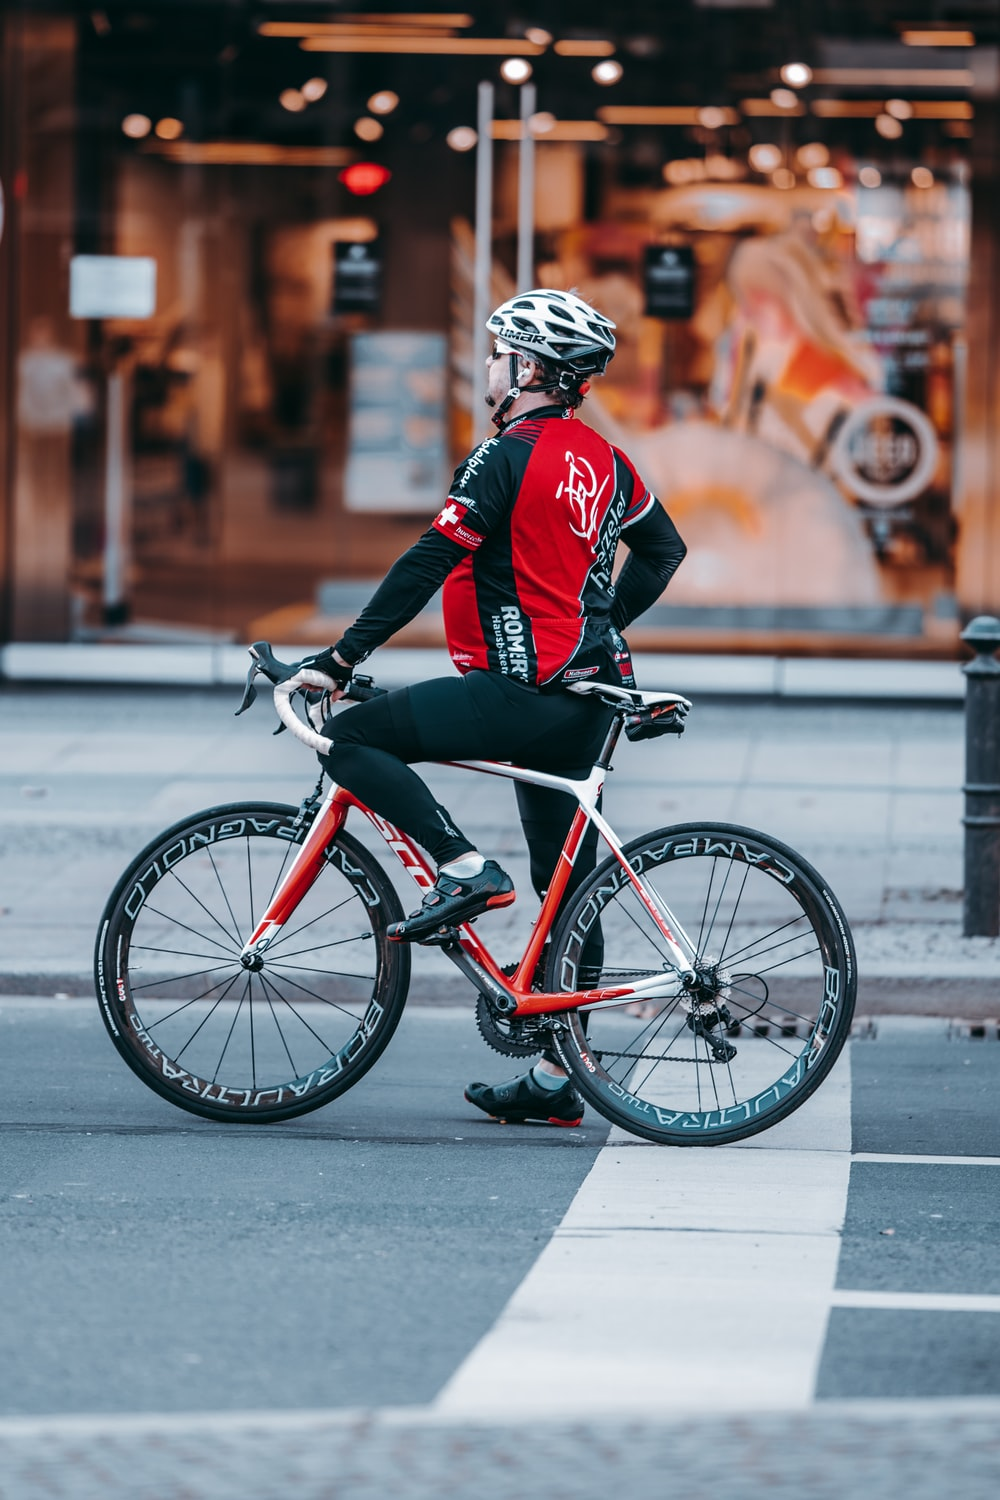 man in red and black jacket riding on bicycle